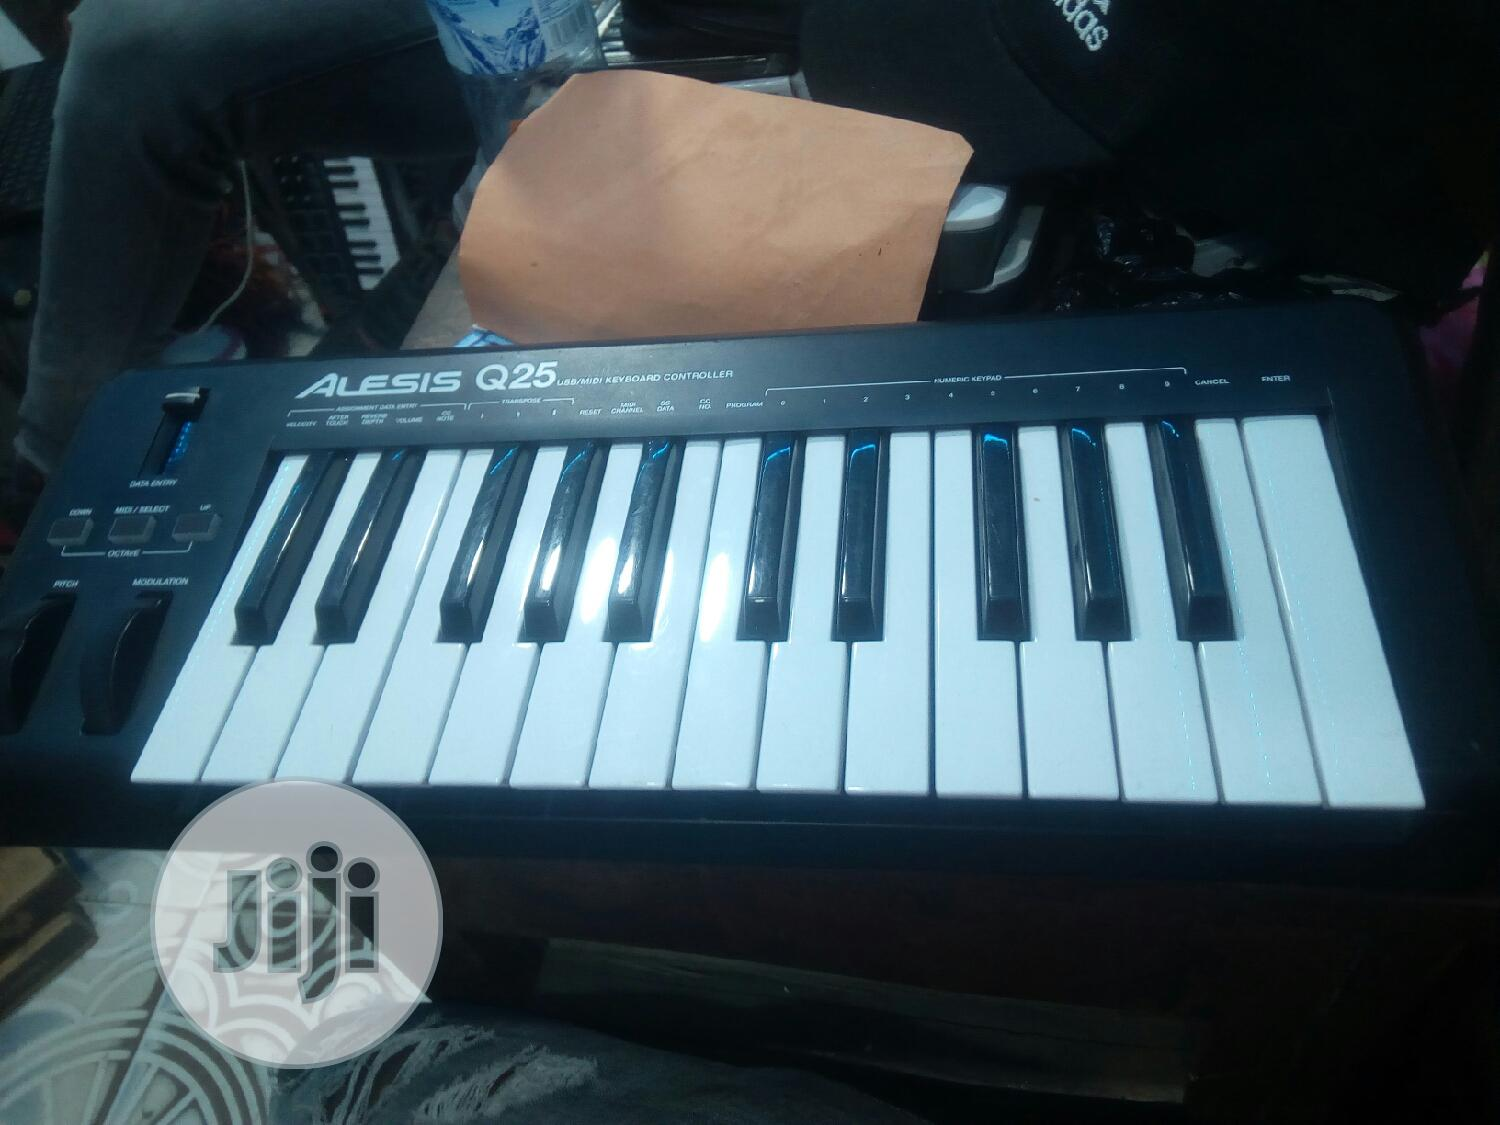 Used Studio Midi Keyboards With Drum Pad | Musical Instruments & Gear for sale in Lagos State, Nigeria